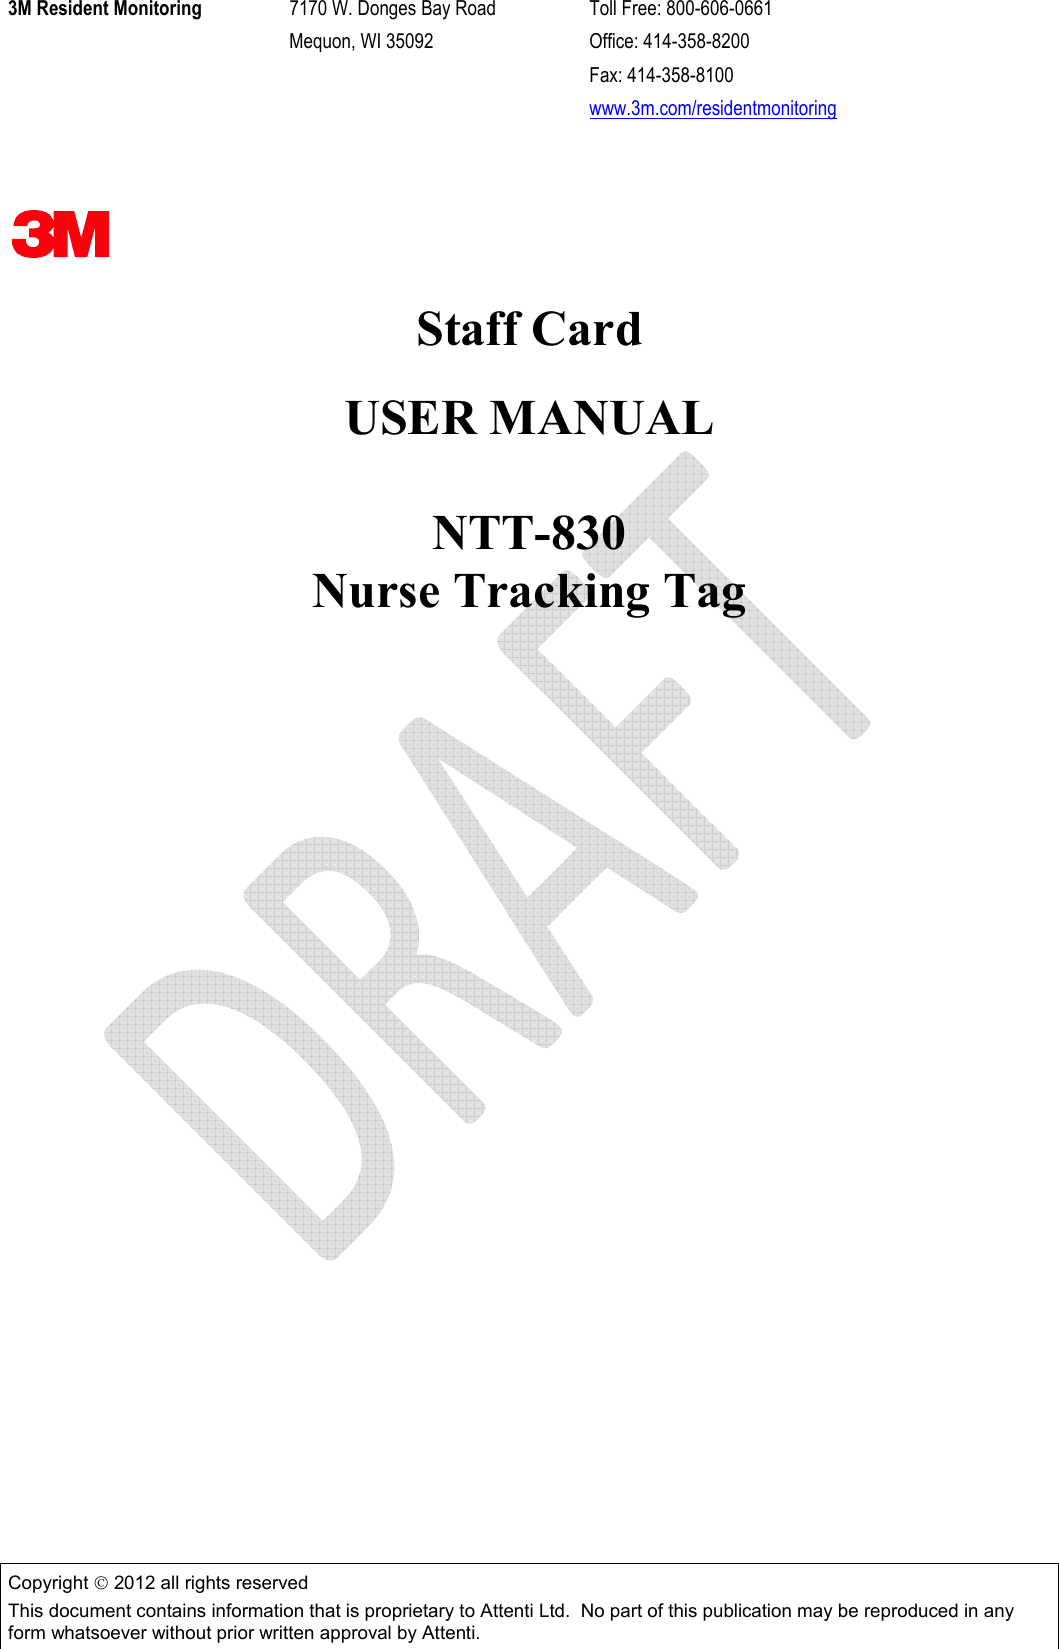 Attenti NTT-830-2 Nurse Tracking Tag User Manual Staff